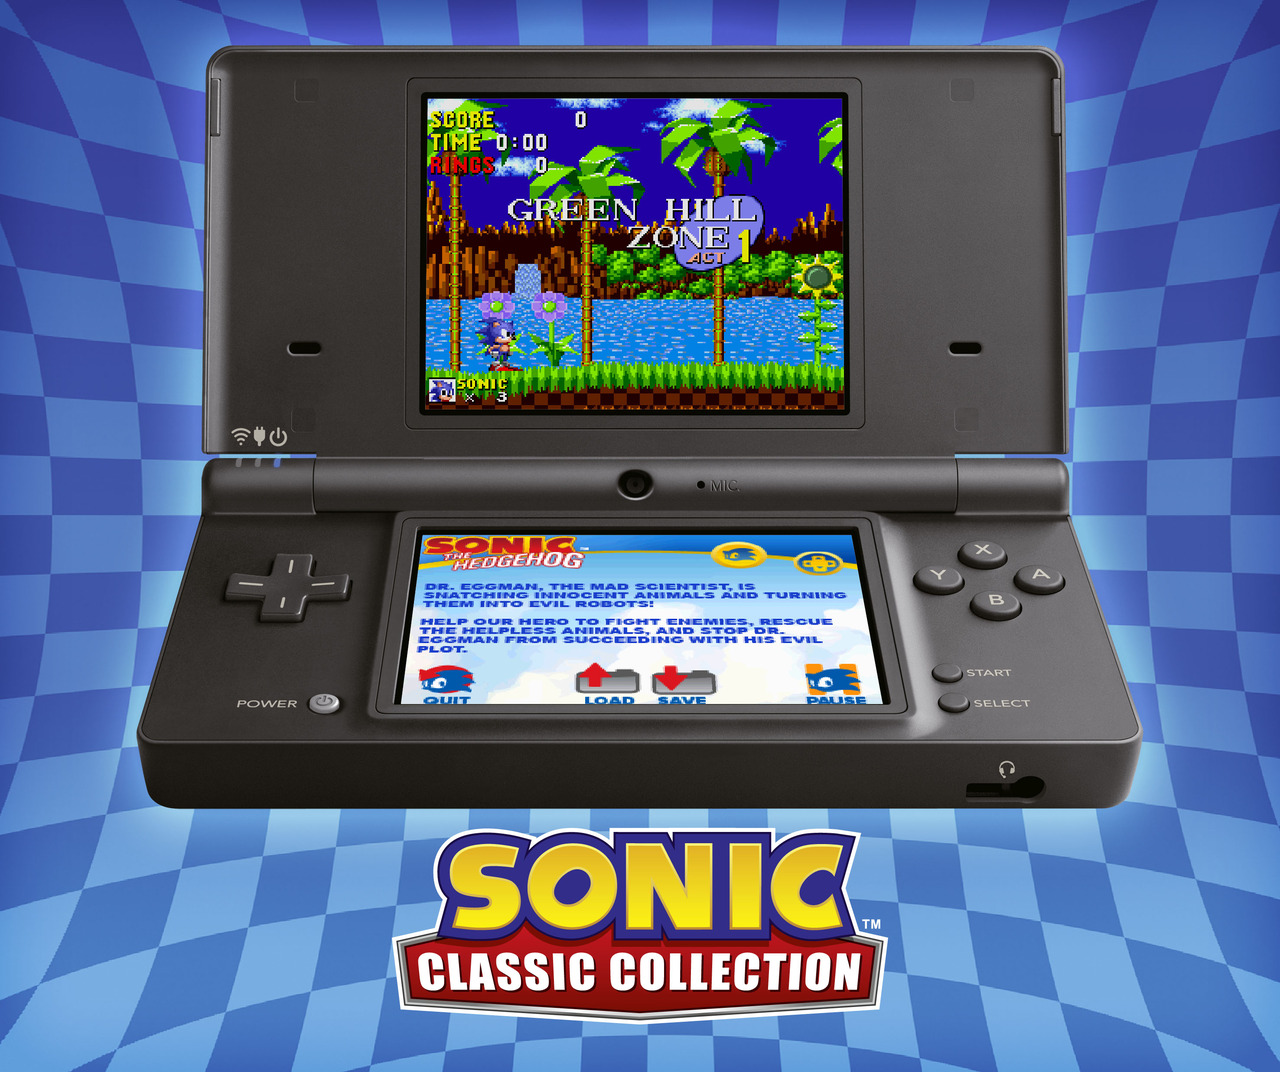 Images Sonic Classic Collection Nintendo DS - 11